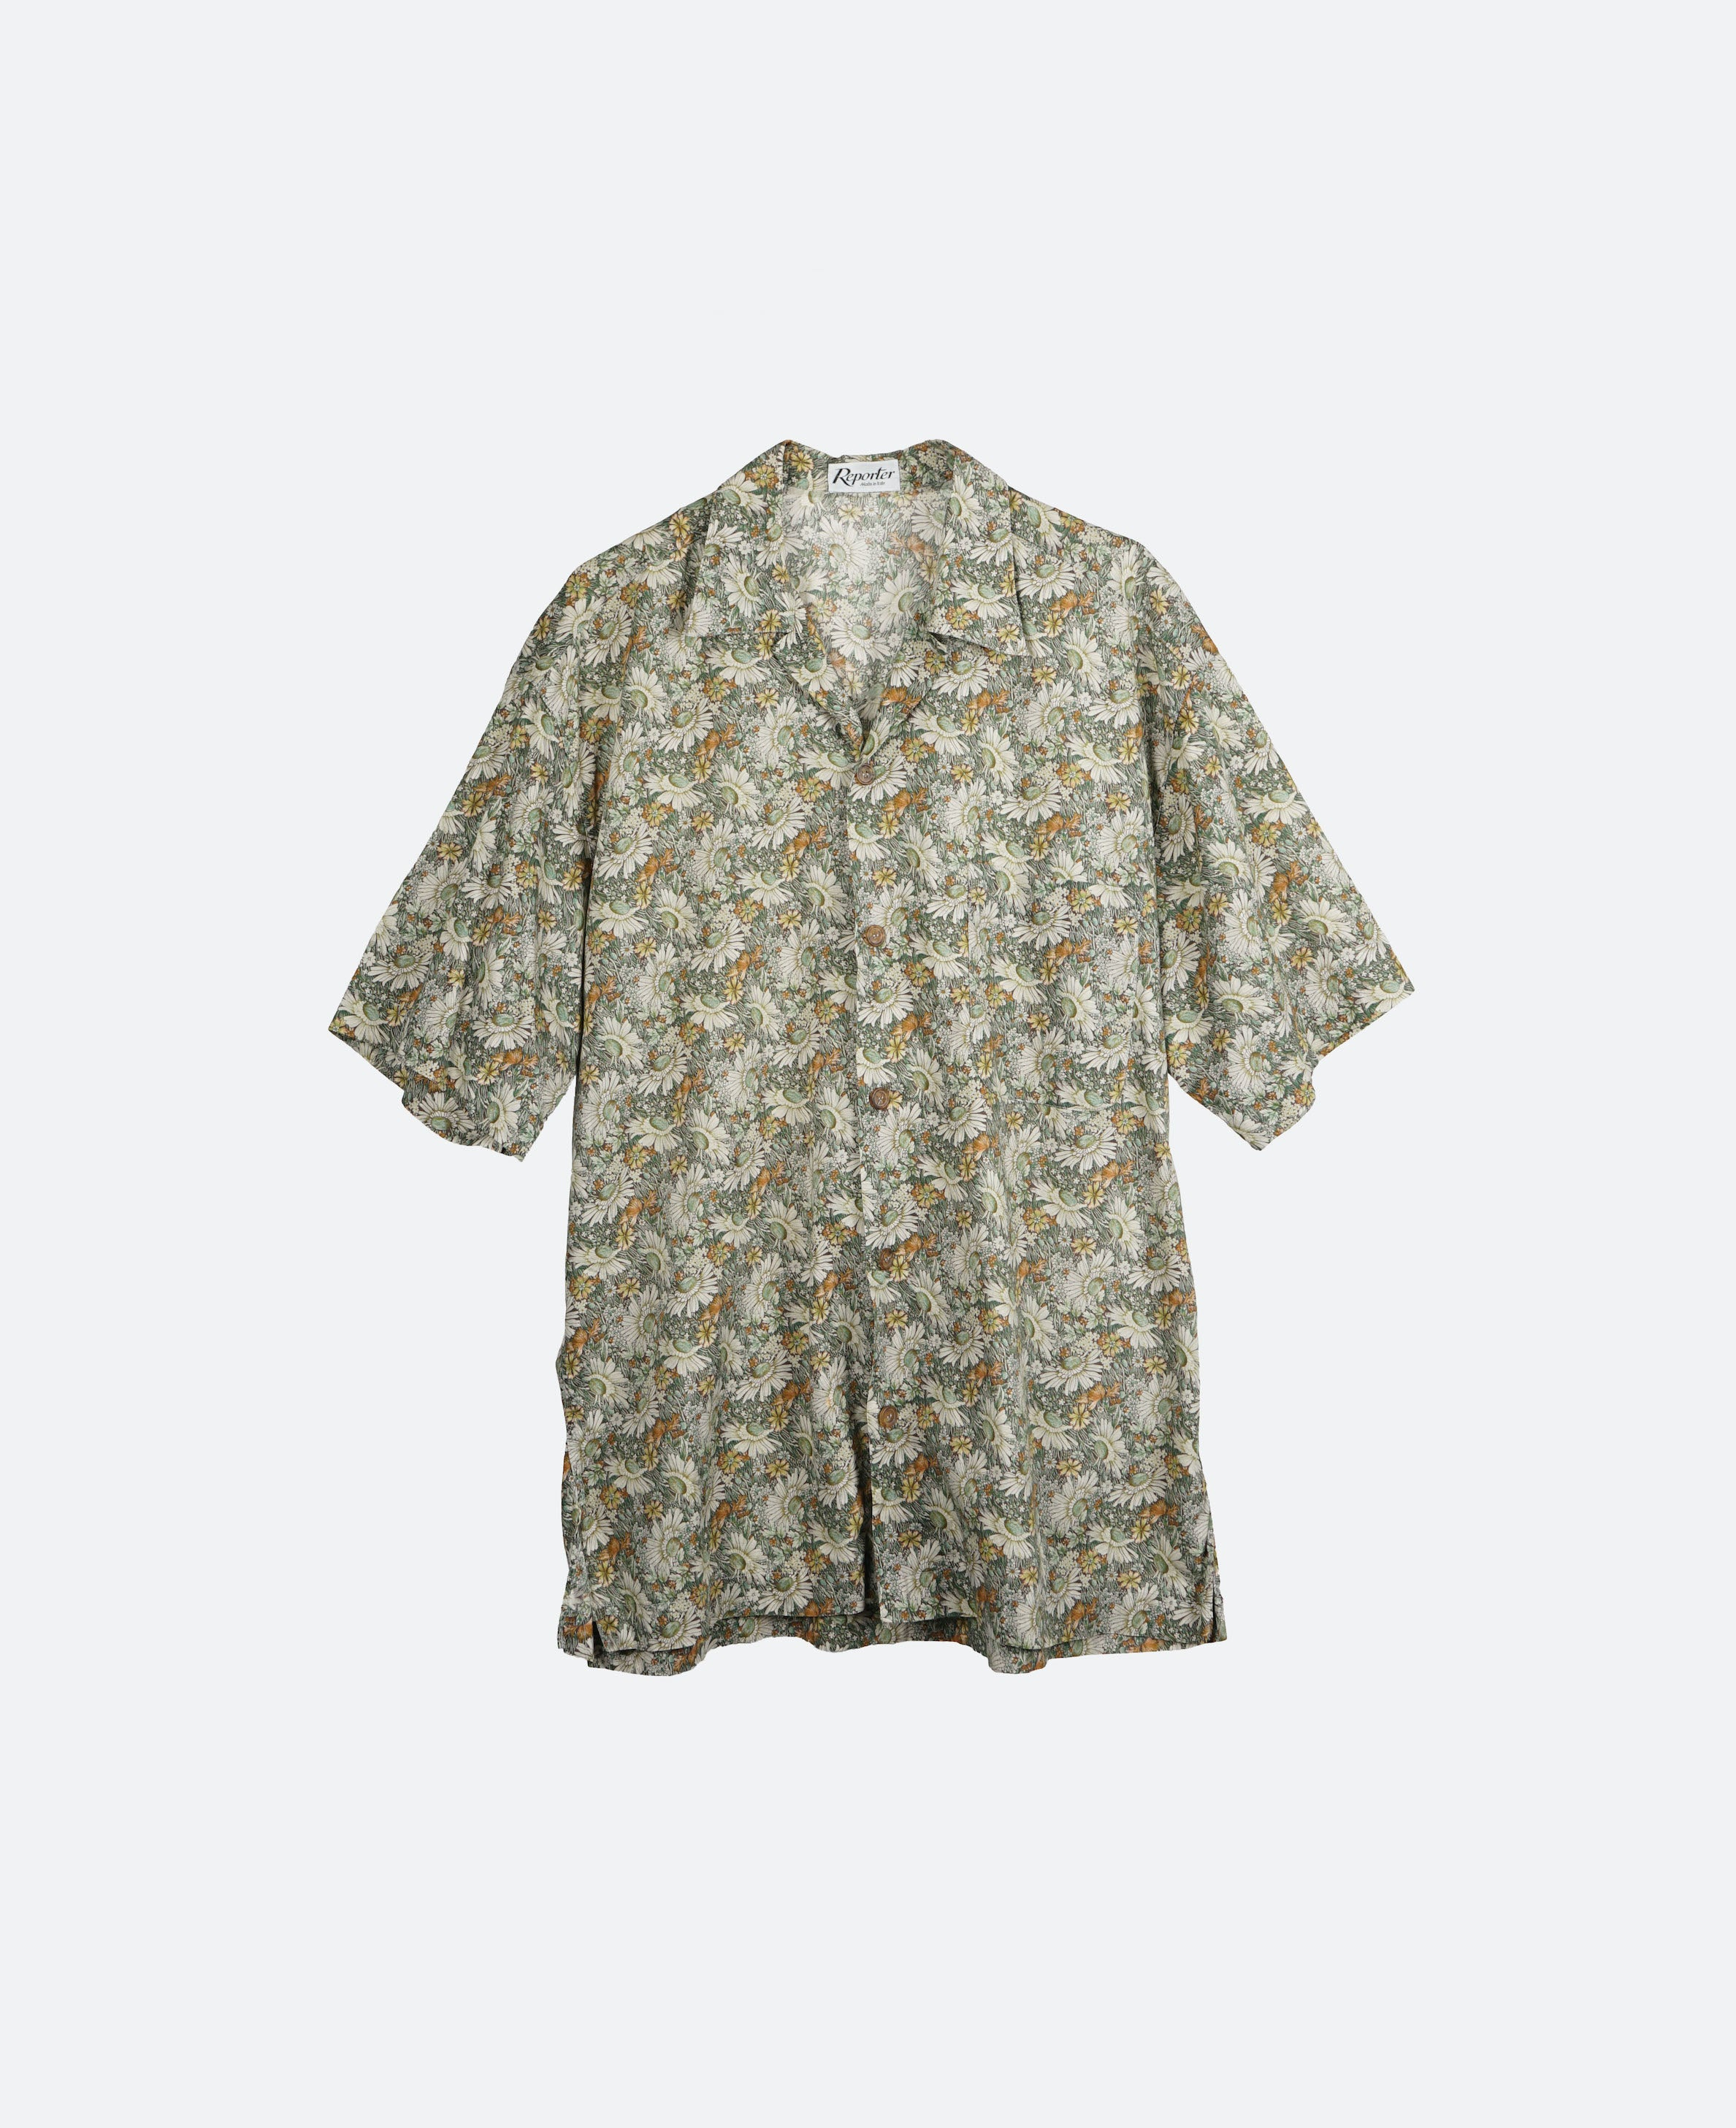 Flower Pattern Shirts S/S